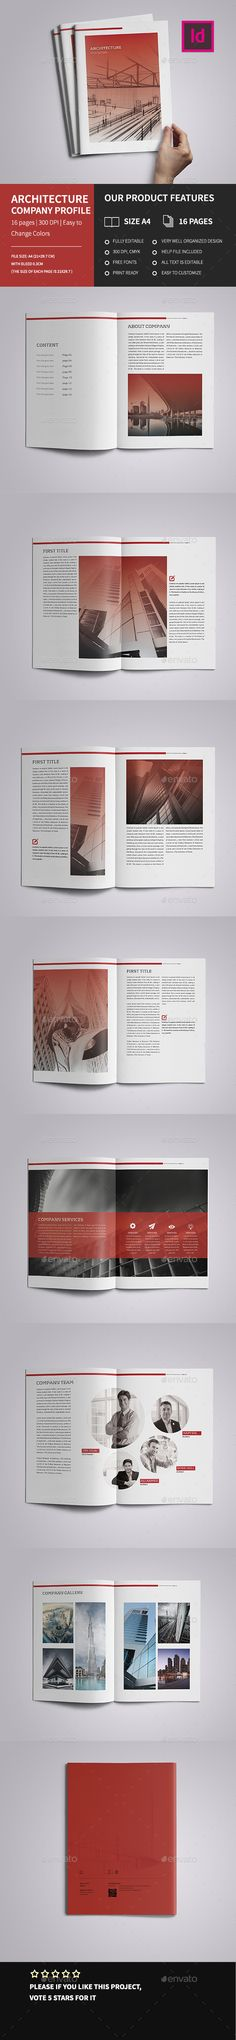 New Modern Architecture Brochure + Bundle Modern architecture - architecture brochure template